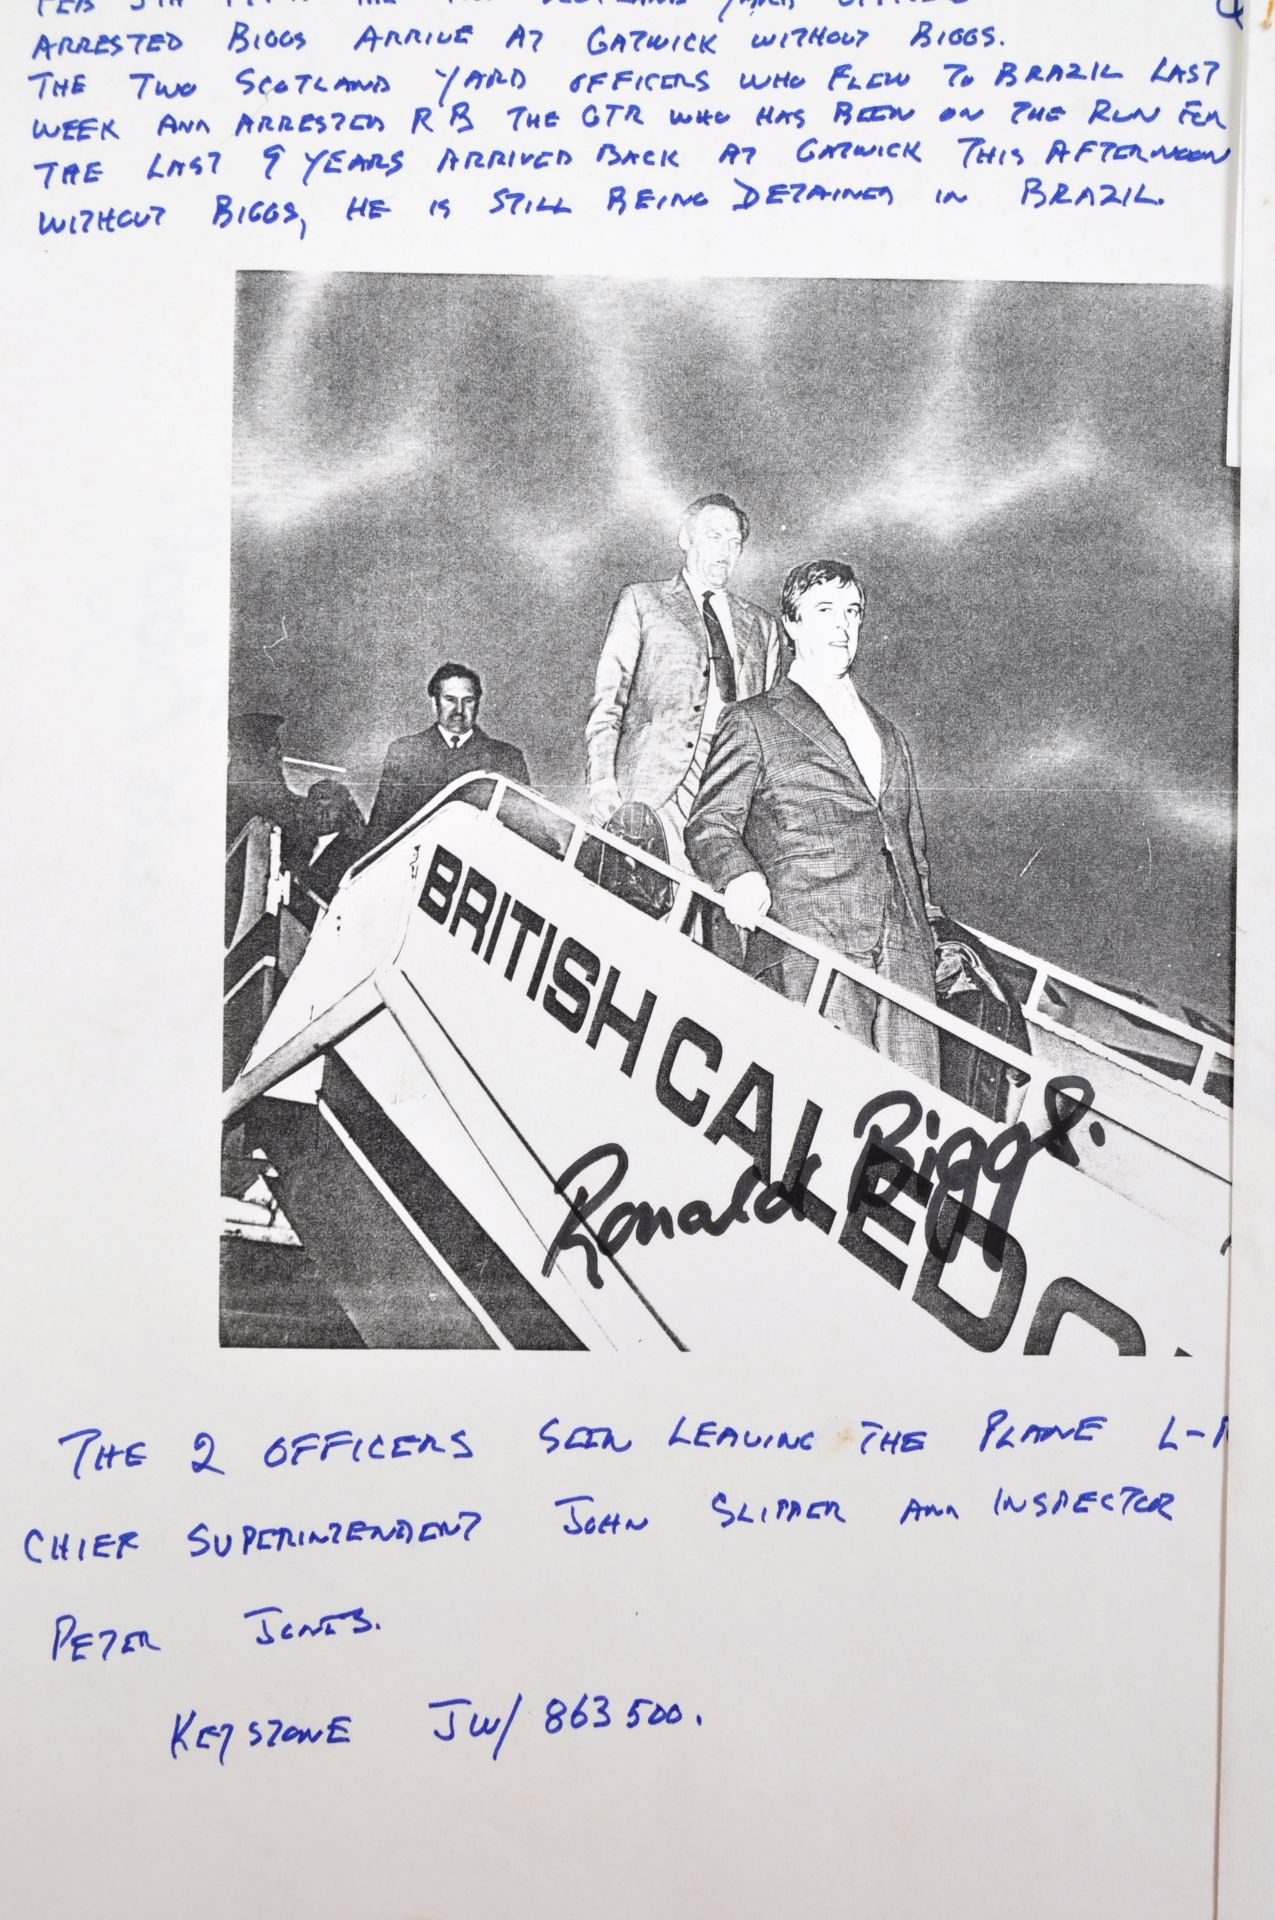 THE GREAT TRAIN ROBBERY - FROM A PRIVATE COLLECTION - Image 4 of 7